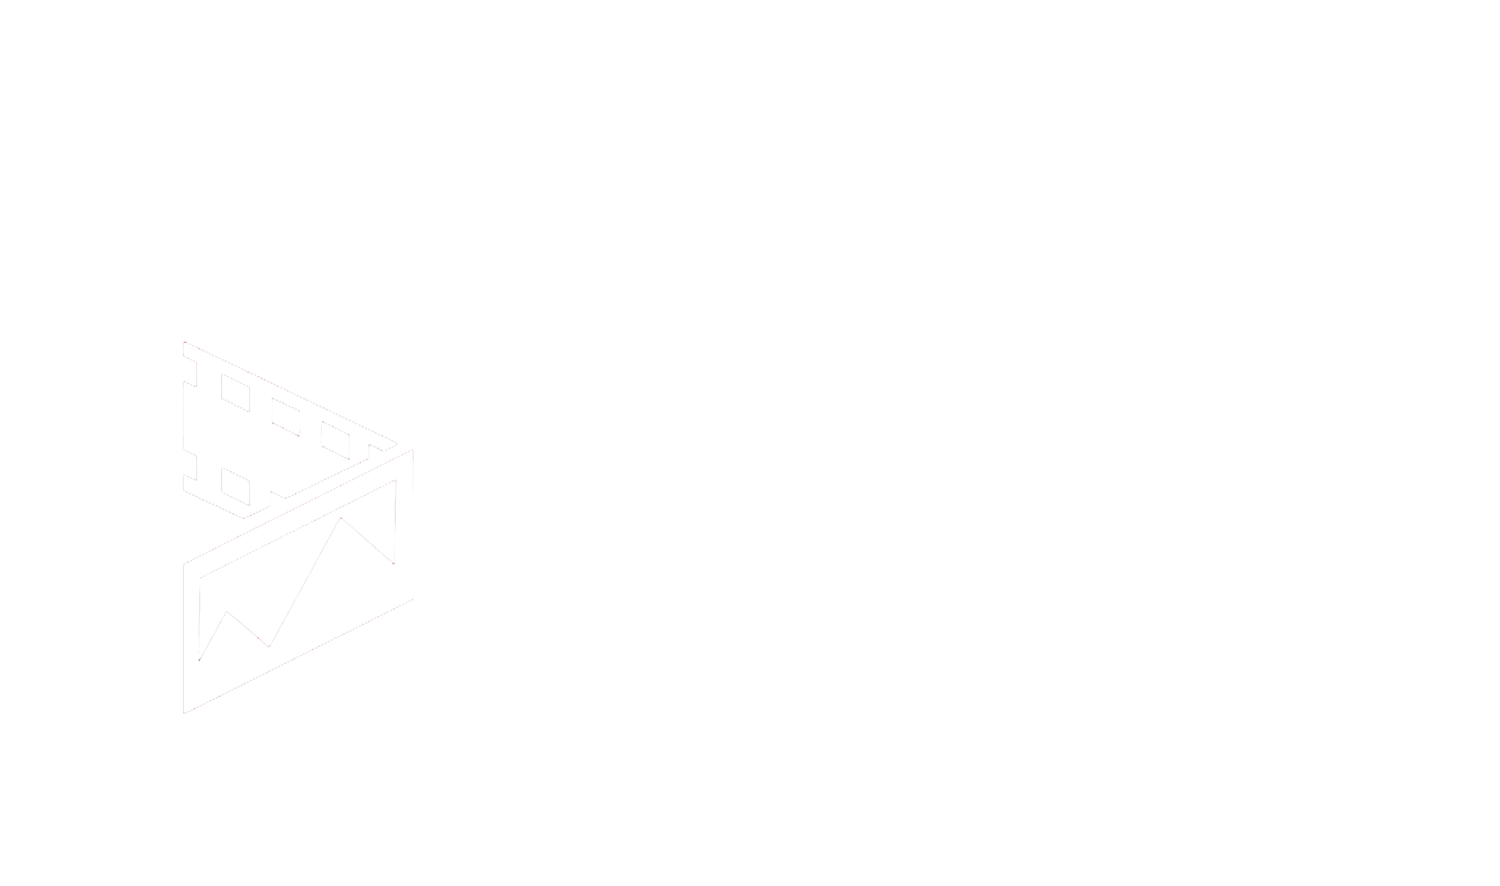 Saigon Photo Tours & Workshops